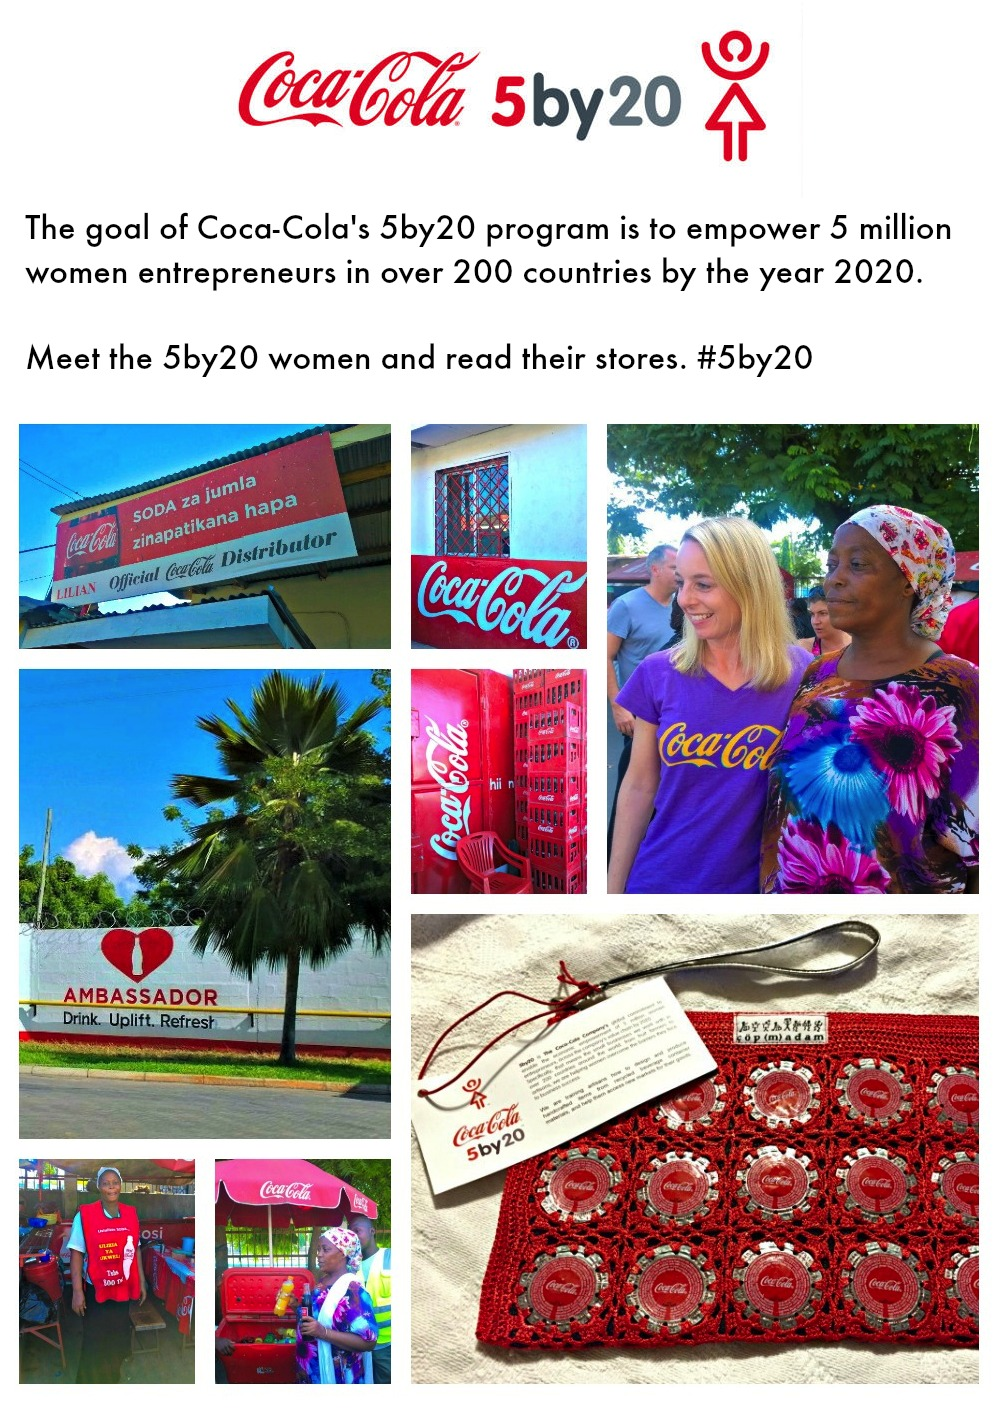 Coca-Cola 5 by 20 Initiative #5by20